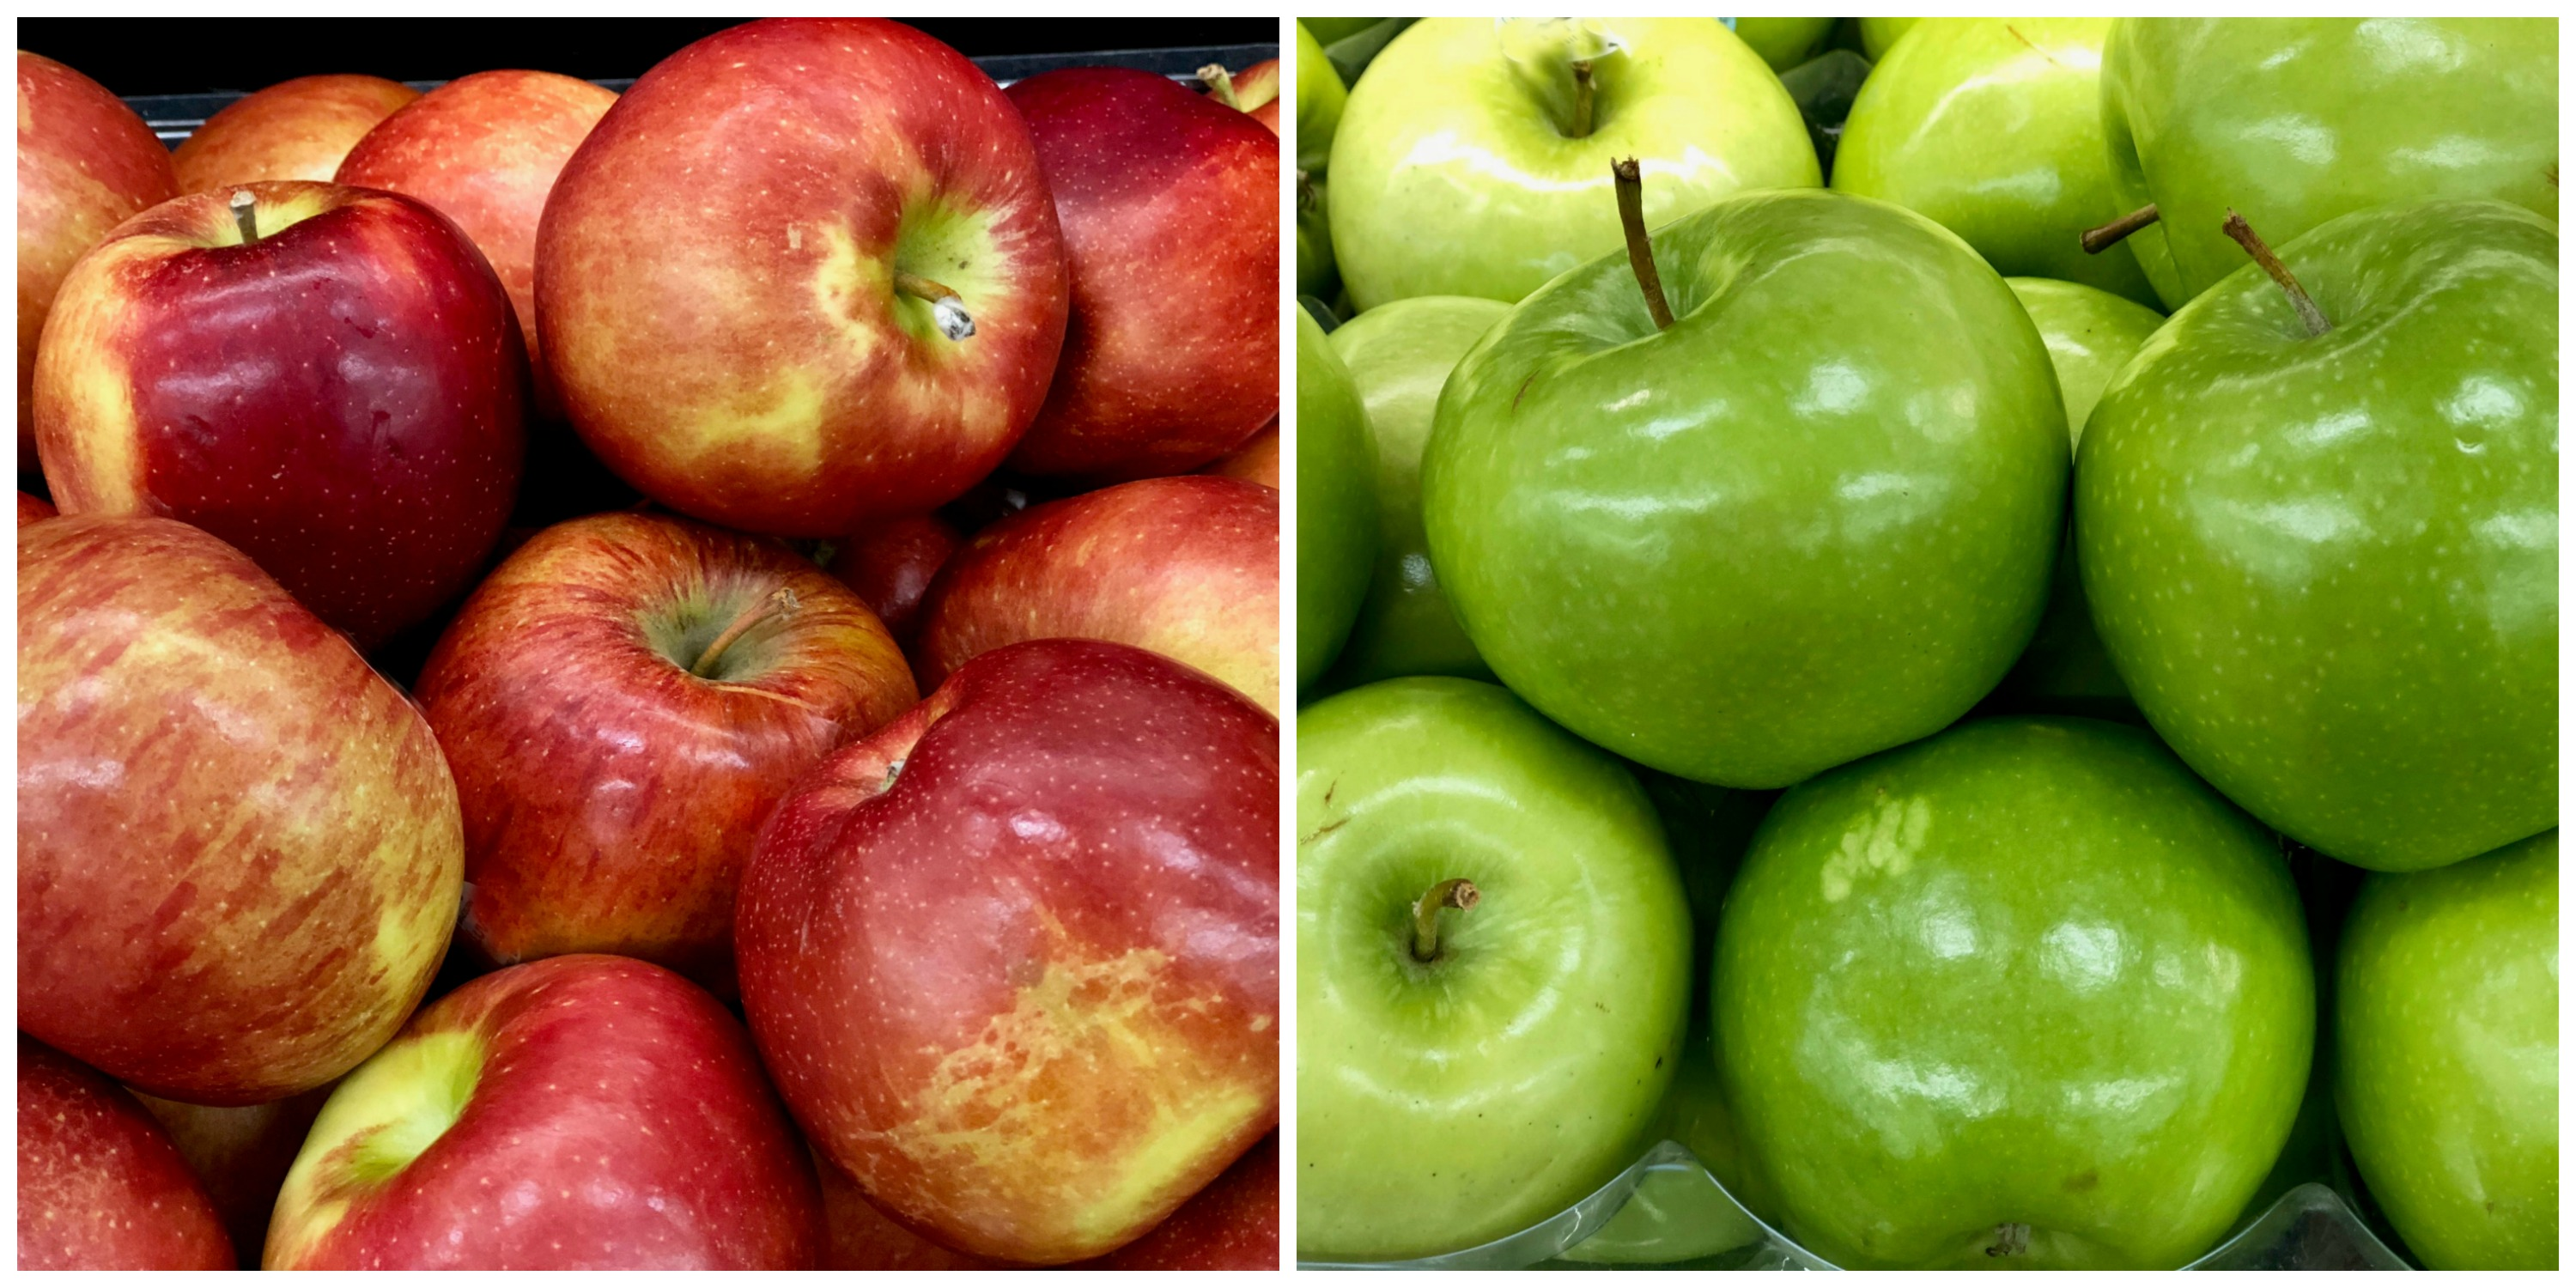 rred and green apples